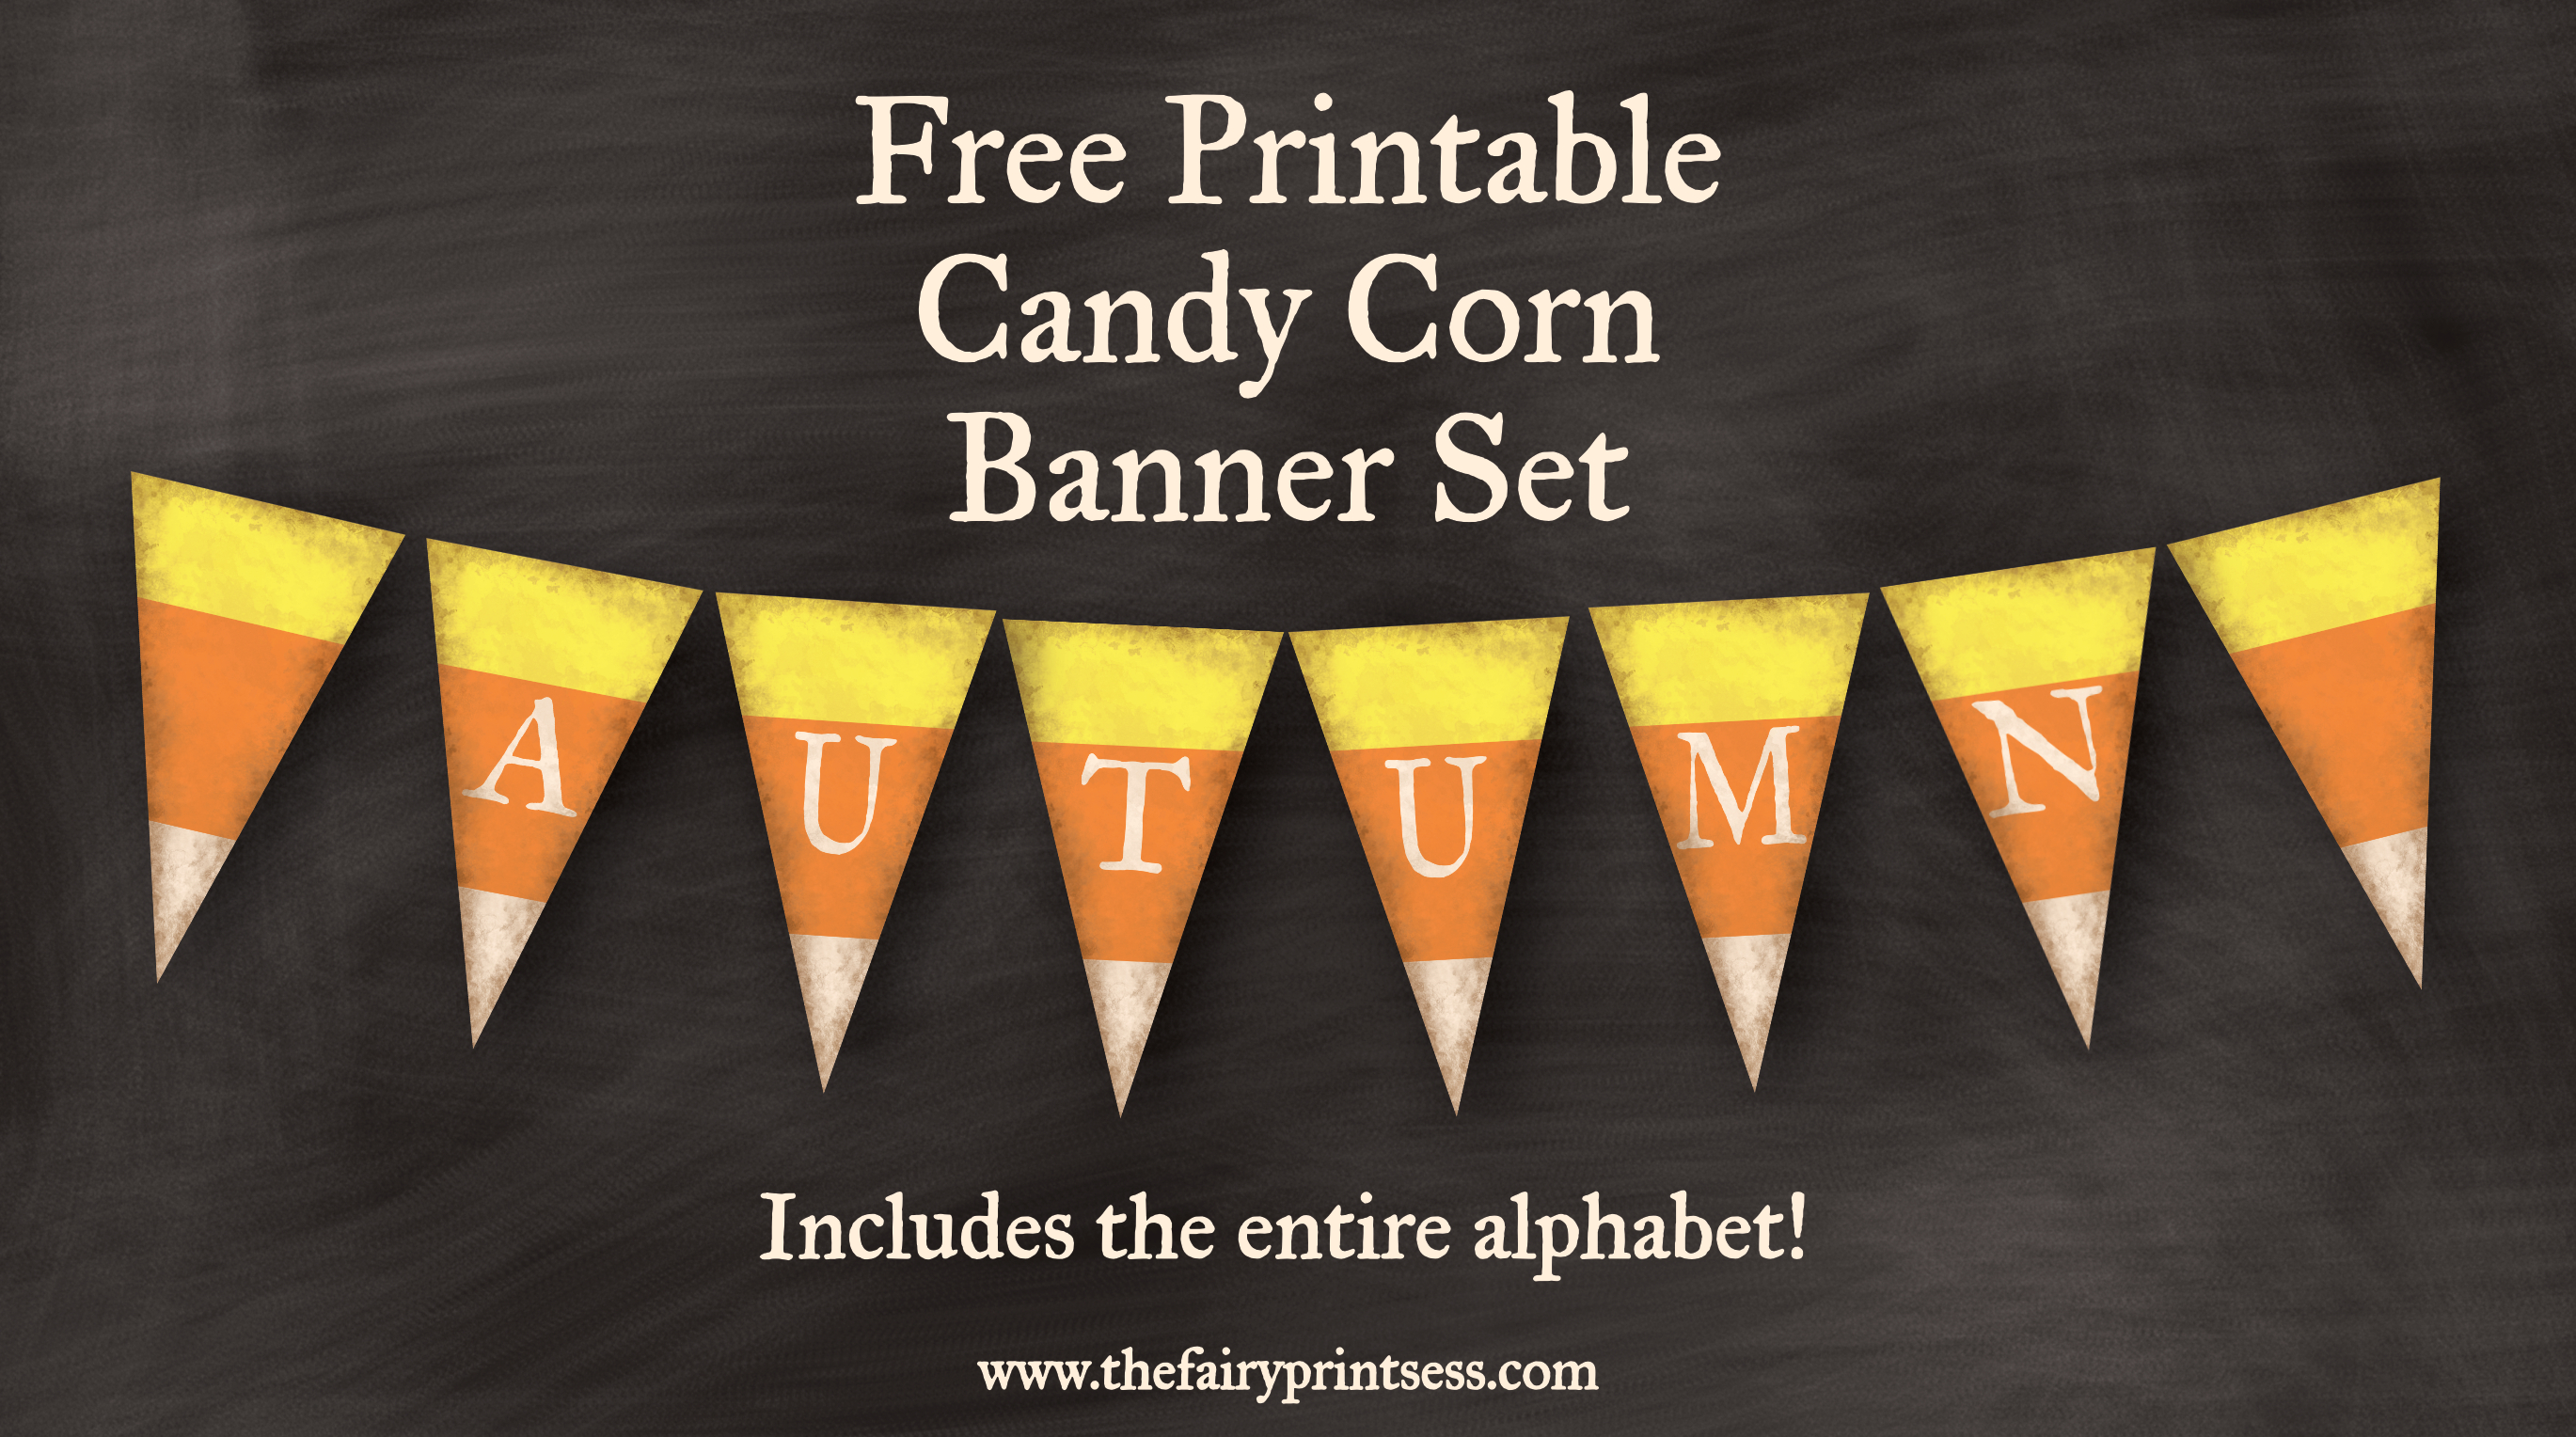 Candy Corn Fall Banner - Free Printable Set For Decor And Crafts! - Free Printable Candy Corn